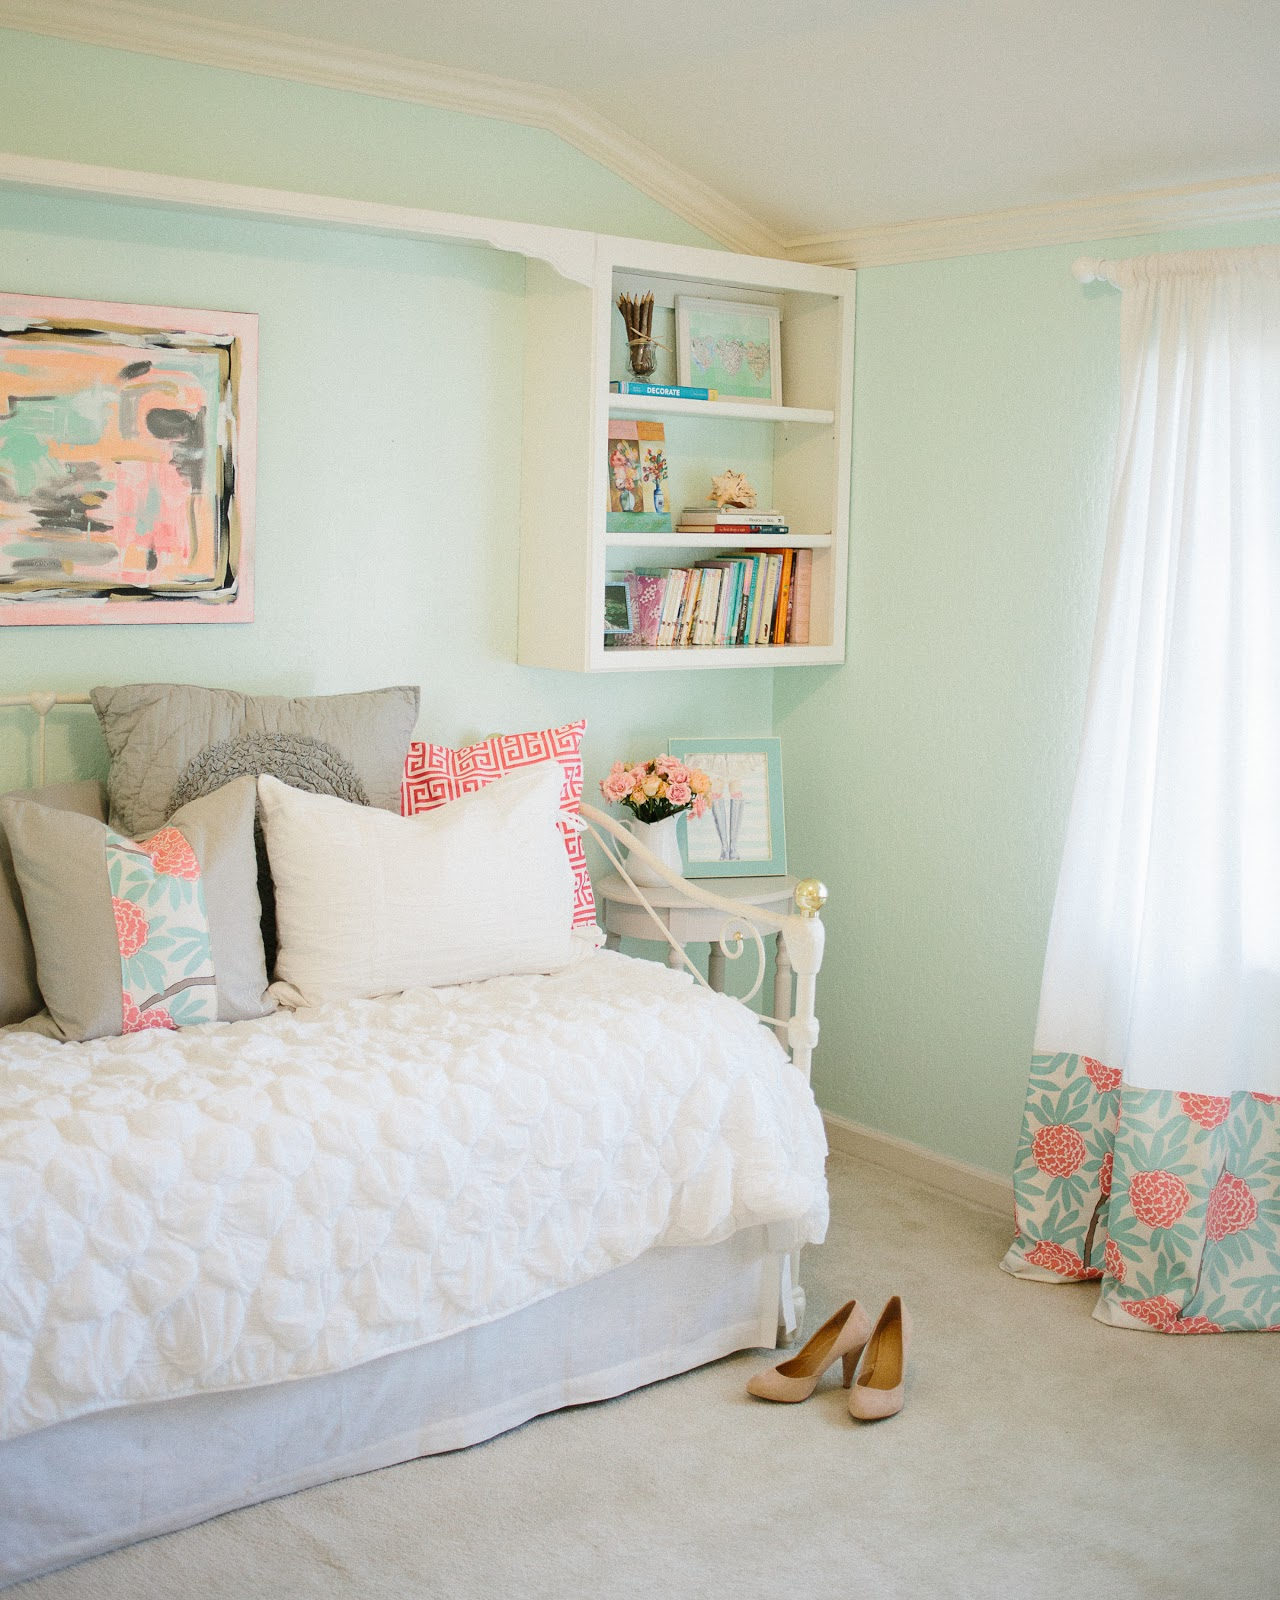 Mint Amp Peachy Pink My Bedroom Tour Reveal Michaela